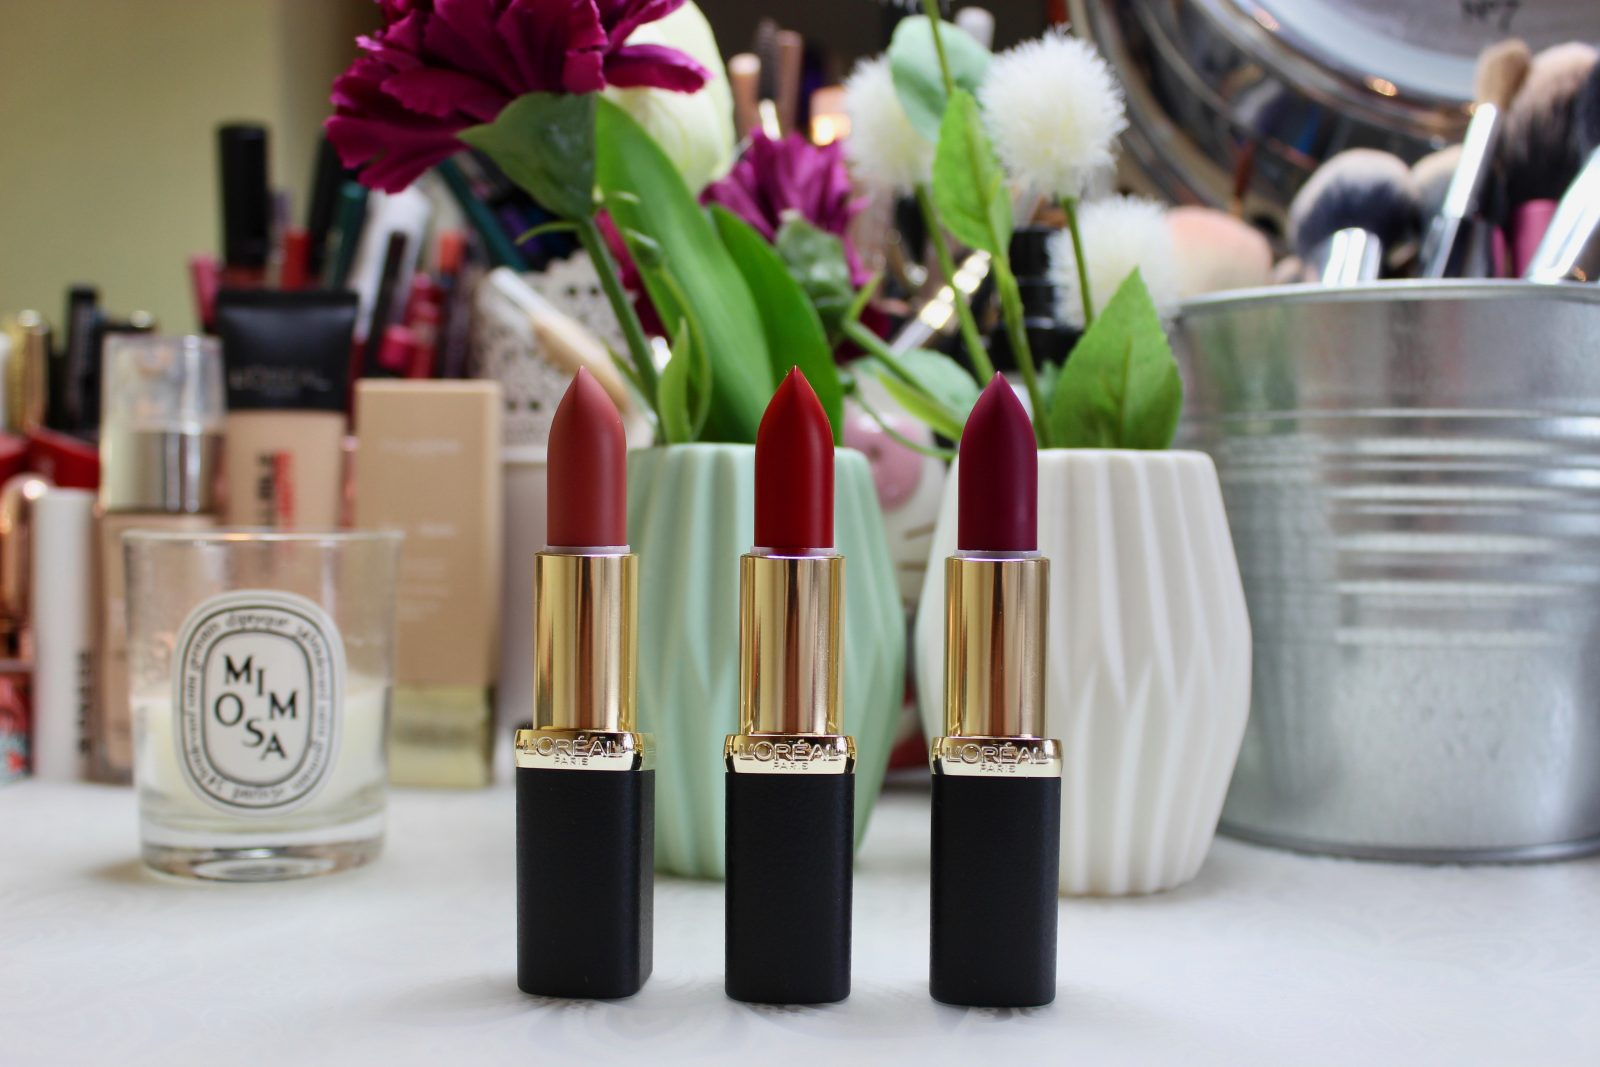 L'Oréal Color Riche Matte Addiction Lipstick